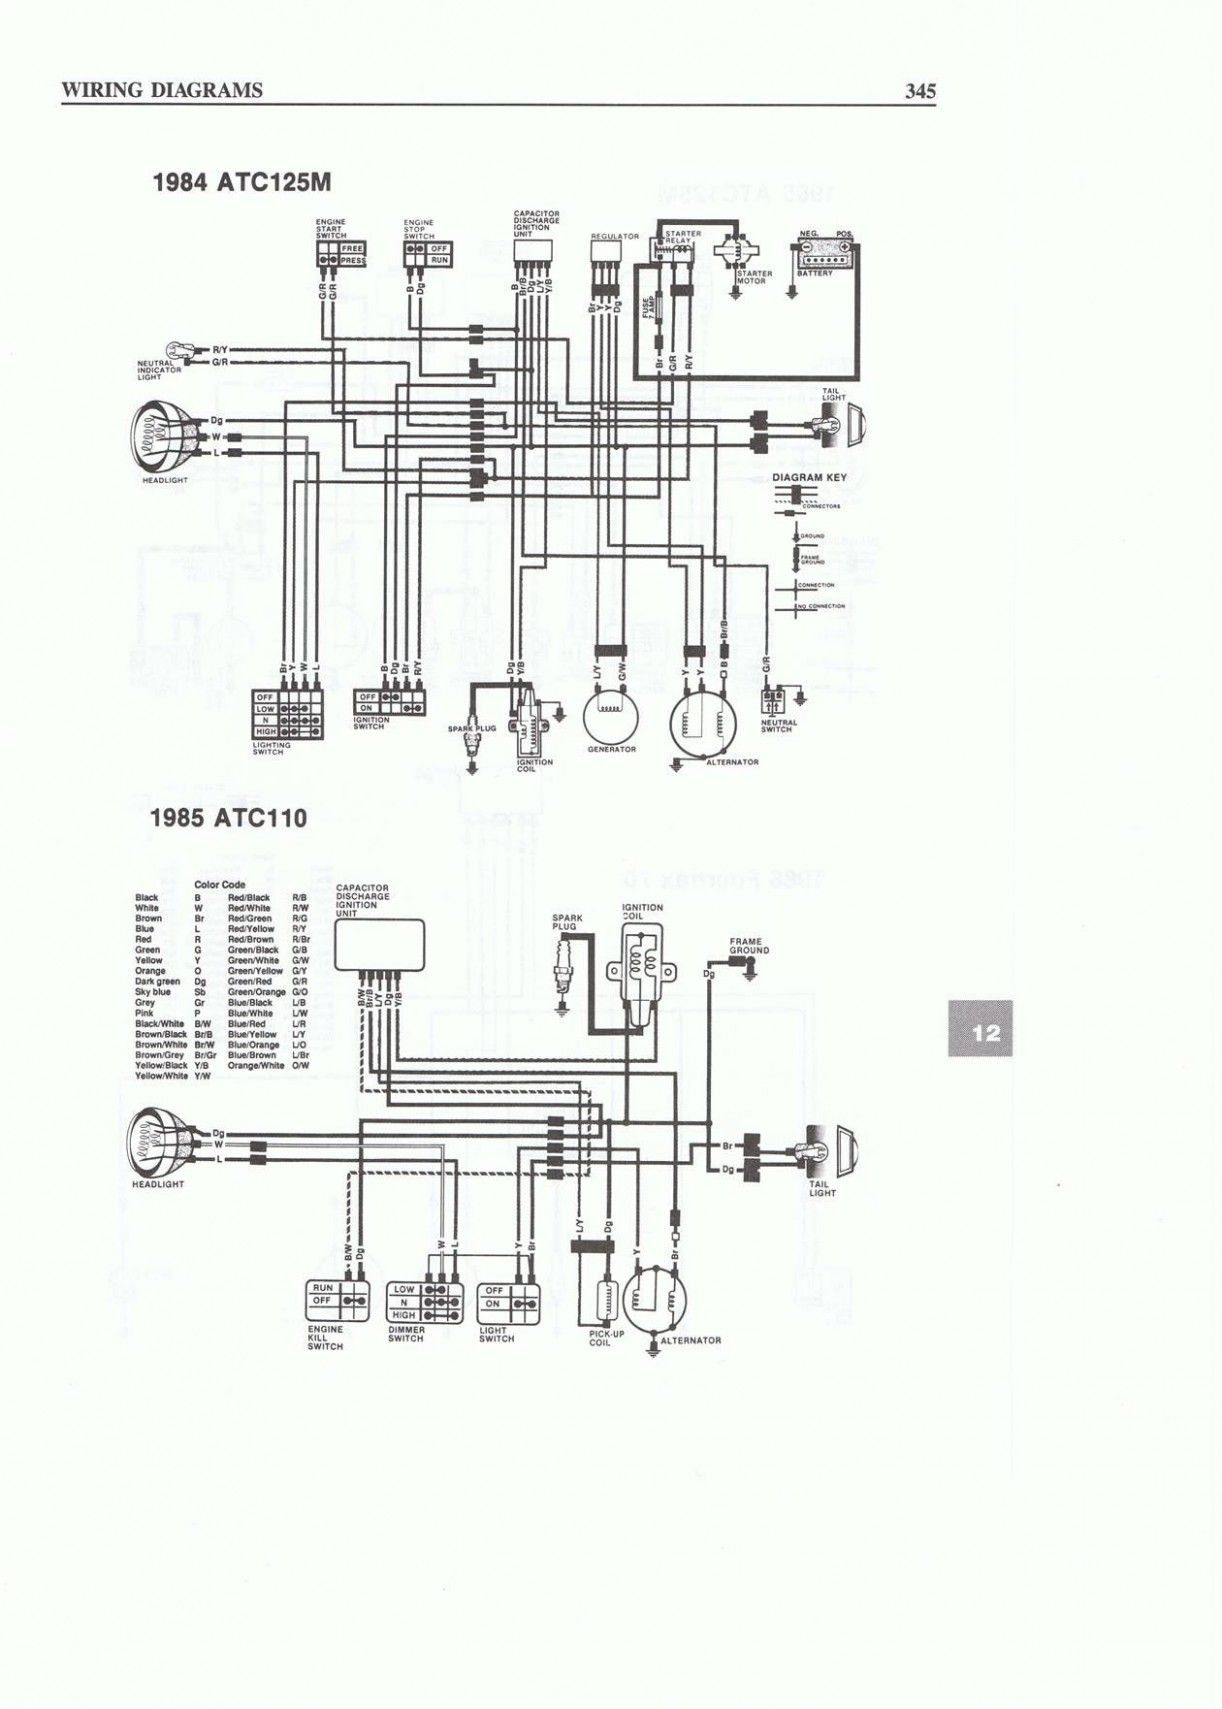 Chinese 7cc Engine Diagram Name di 2020